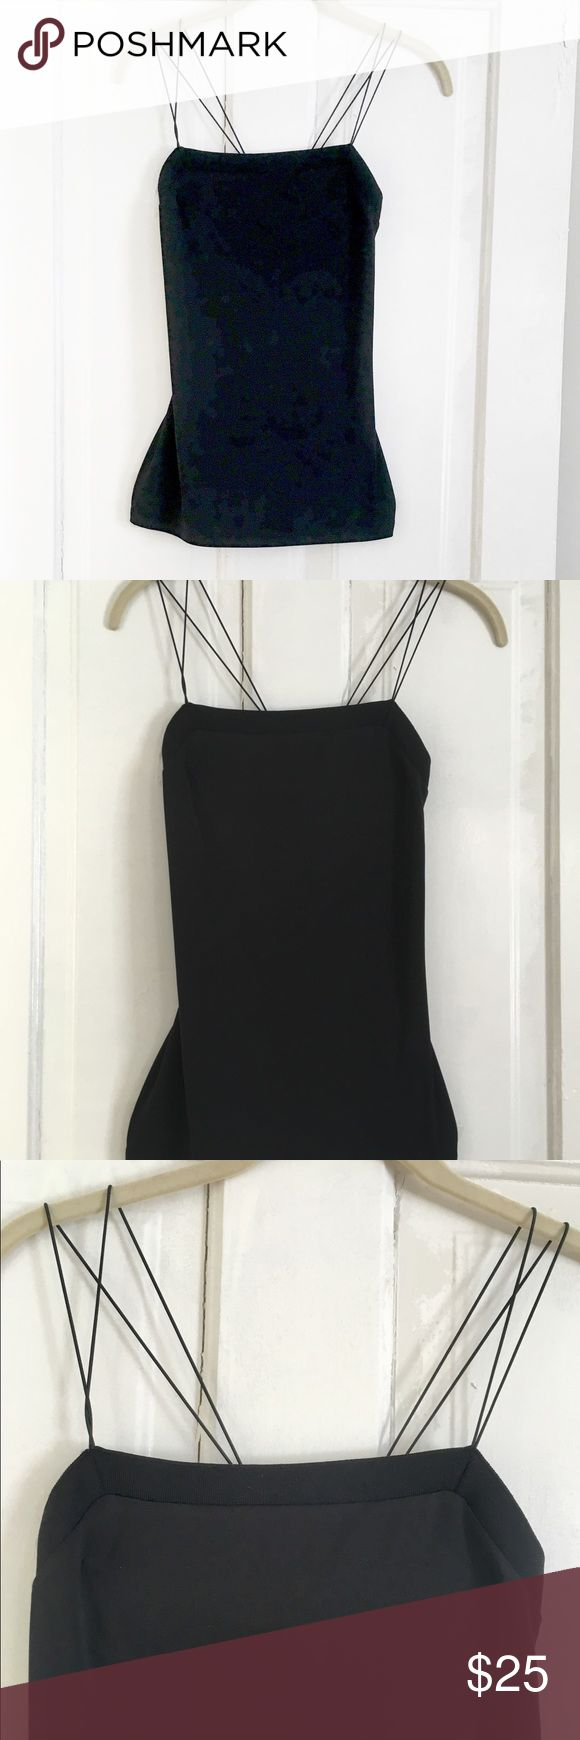 Express - Black Strappy Top. XS. This top criss-crosses in the back and has a nice figure-flattering fit. It's not skin tight, but slightly loose while form fitting. Very nicely made. Never been worn. Express Tops